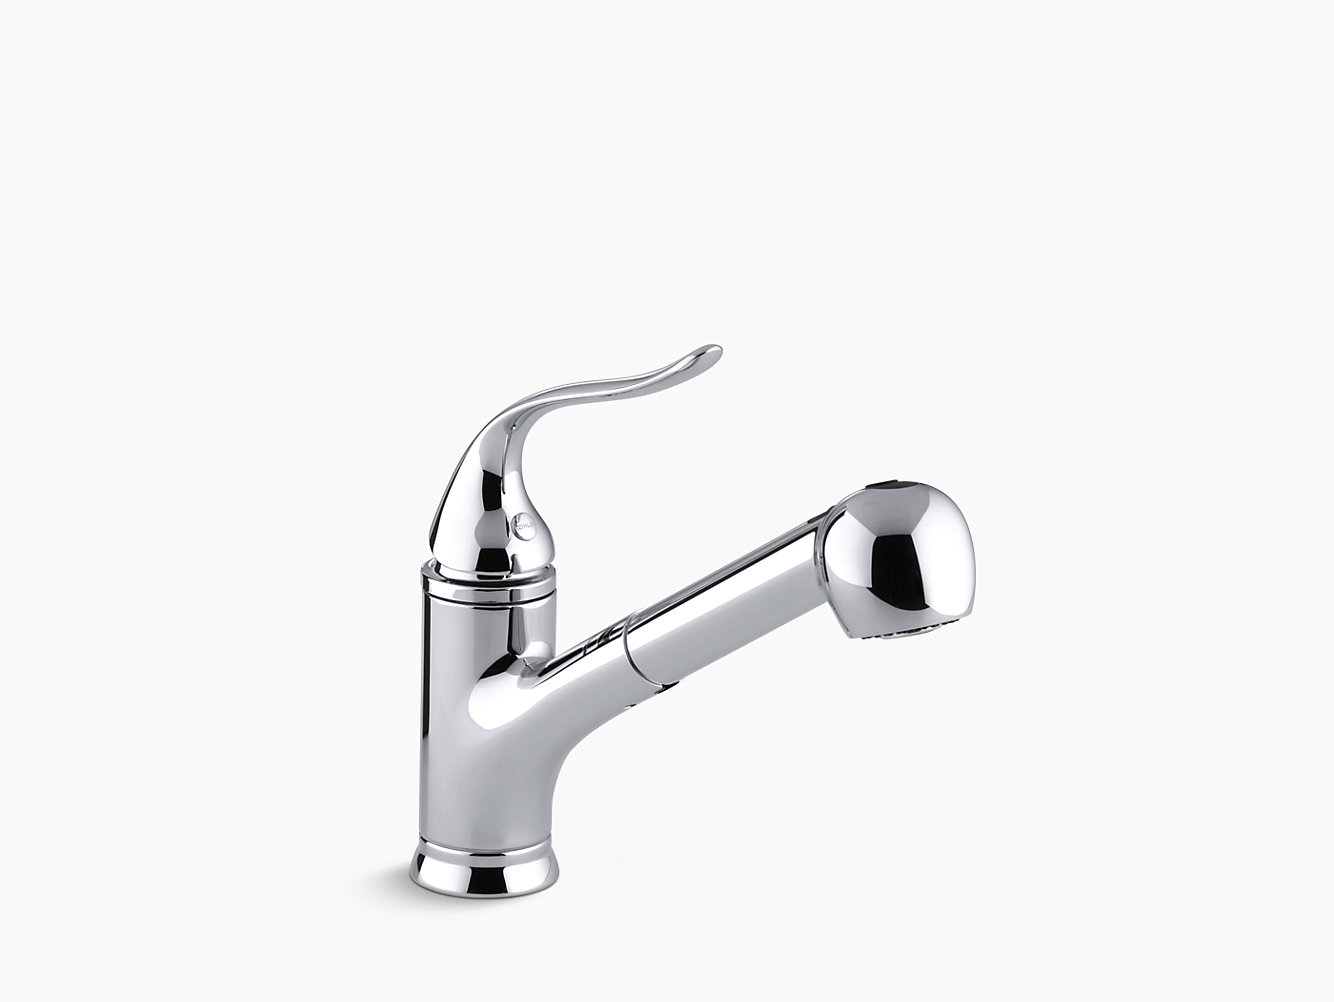 k-15160 | coralais pull-out spray kitchen sink faucet